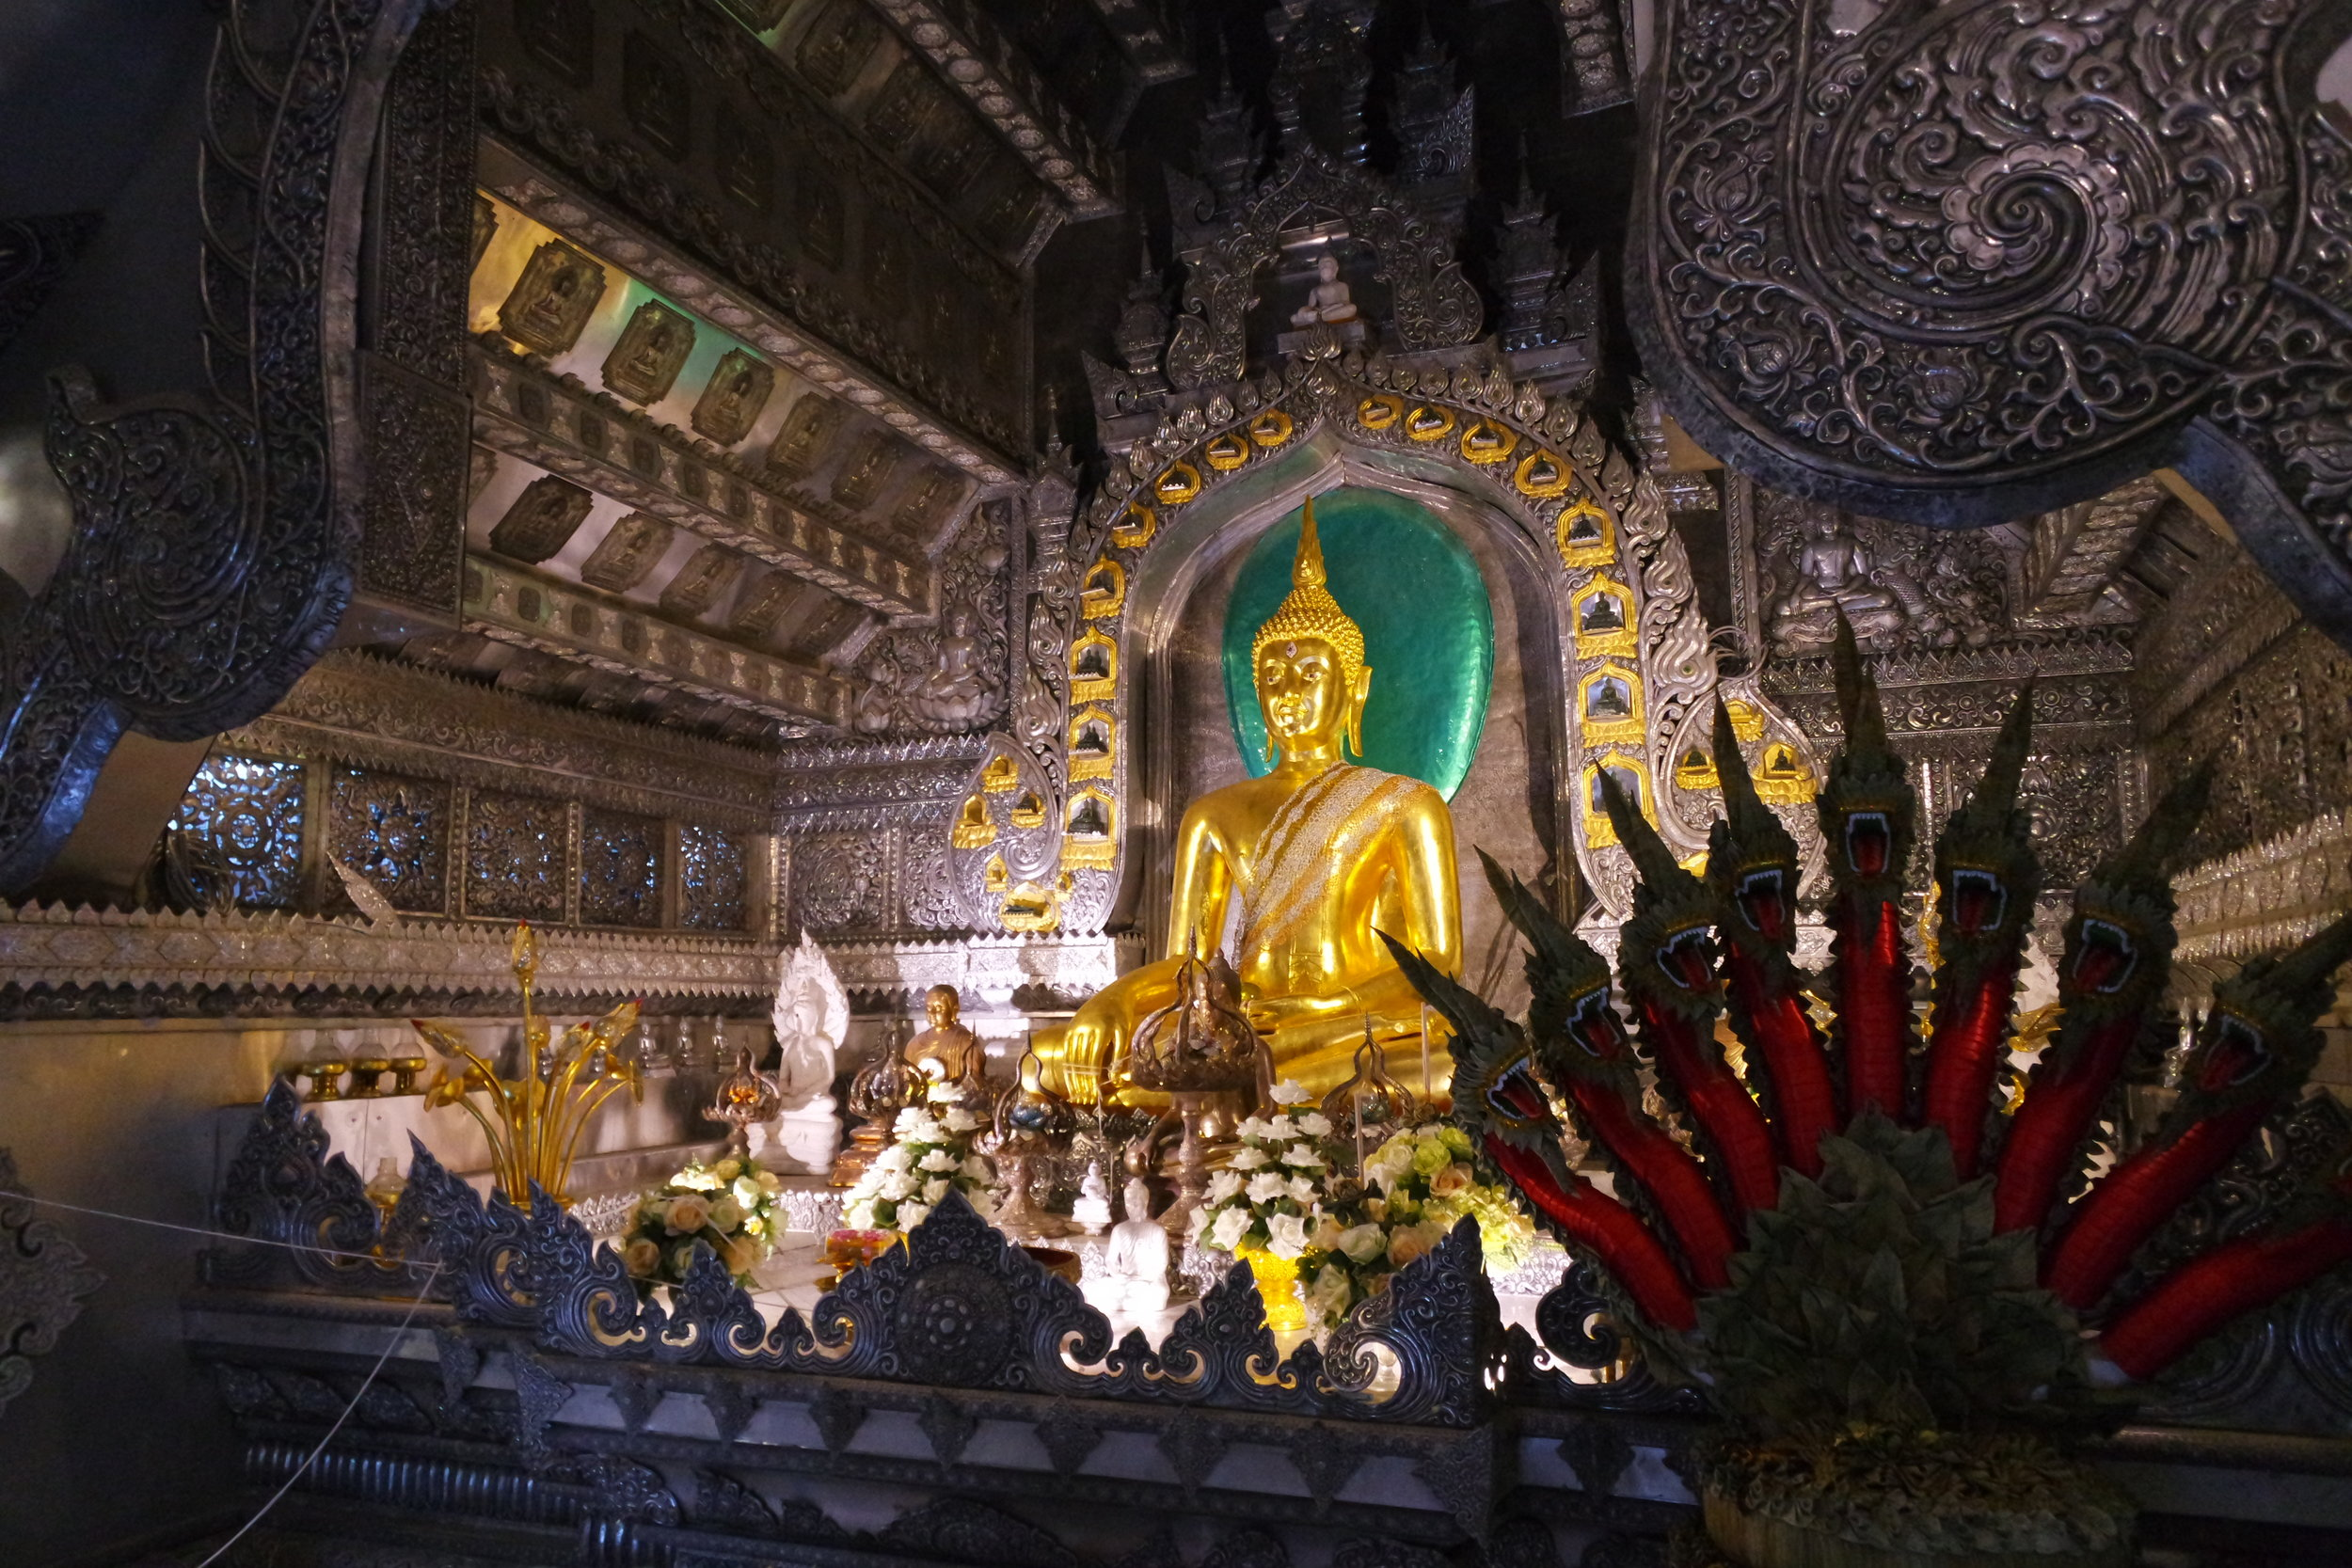 Sorry, ladies. Only men can feast their eyes on the interior of Wat Sri Suphan, the amazing Silver Temple in Chiang Mai